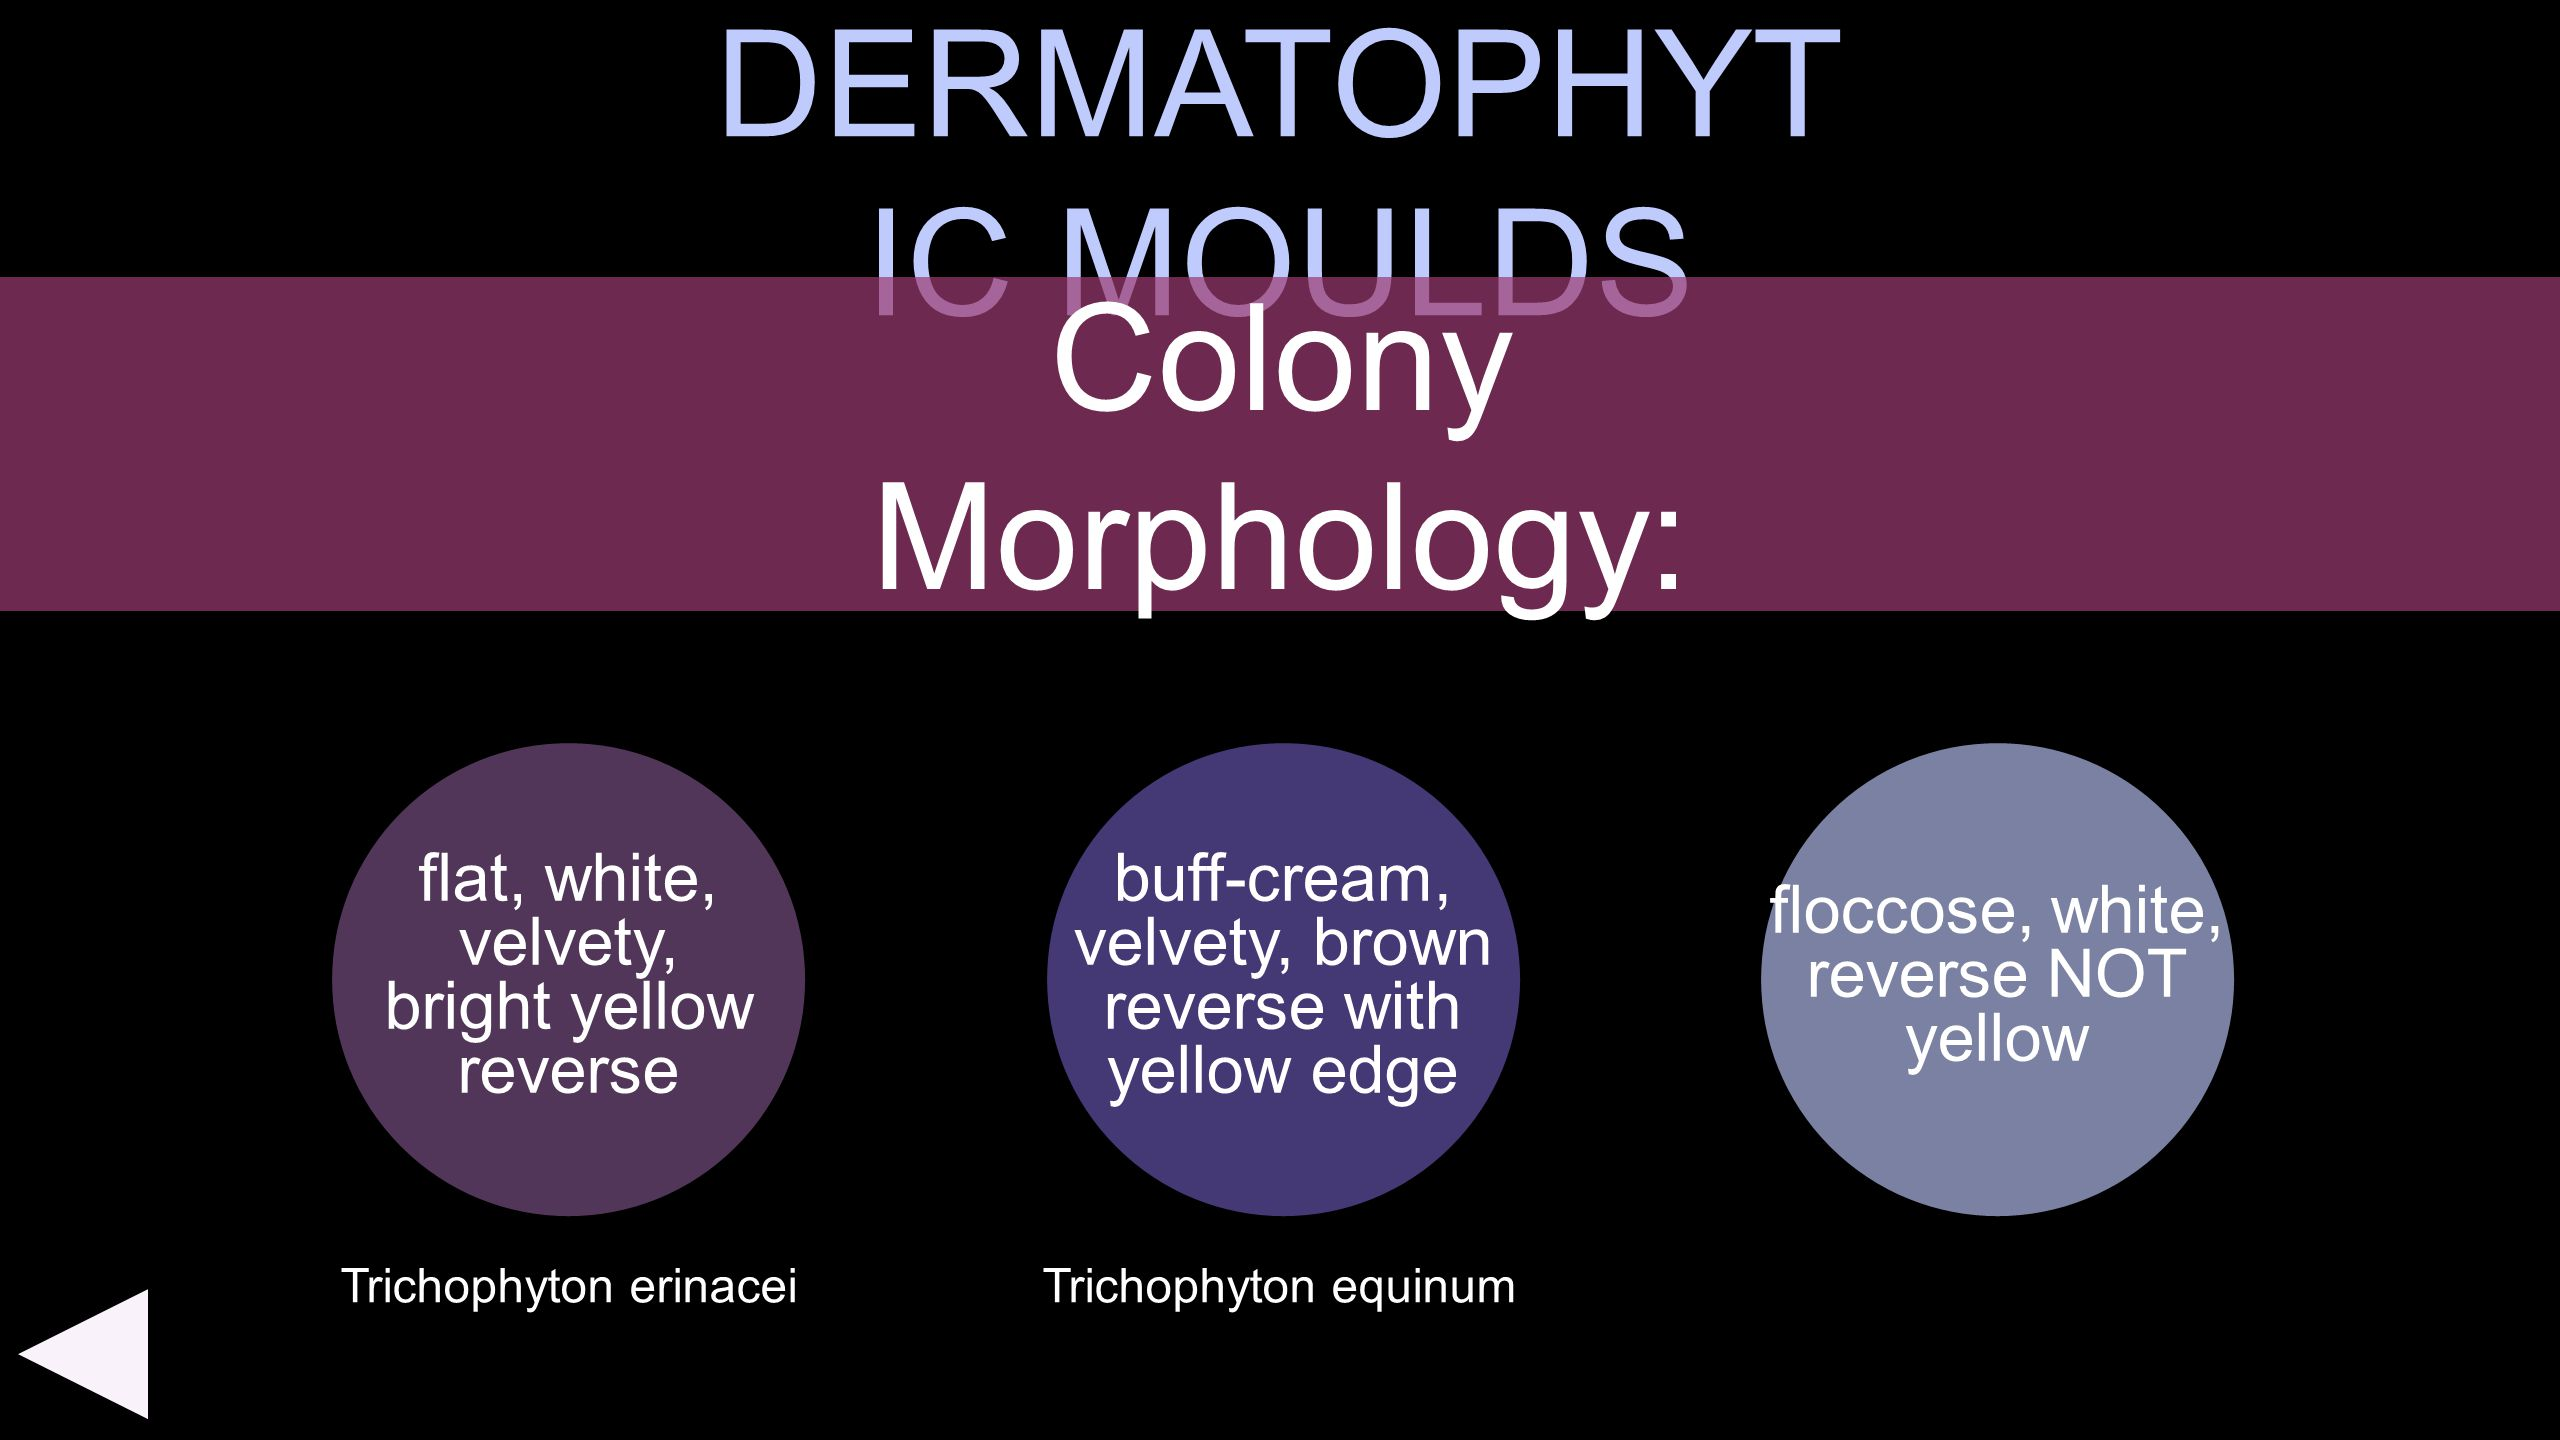 DERMATOPHYTIC MOULDS Colony Morphology: flat, white, velvety,